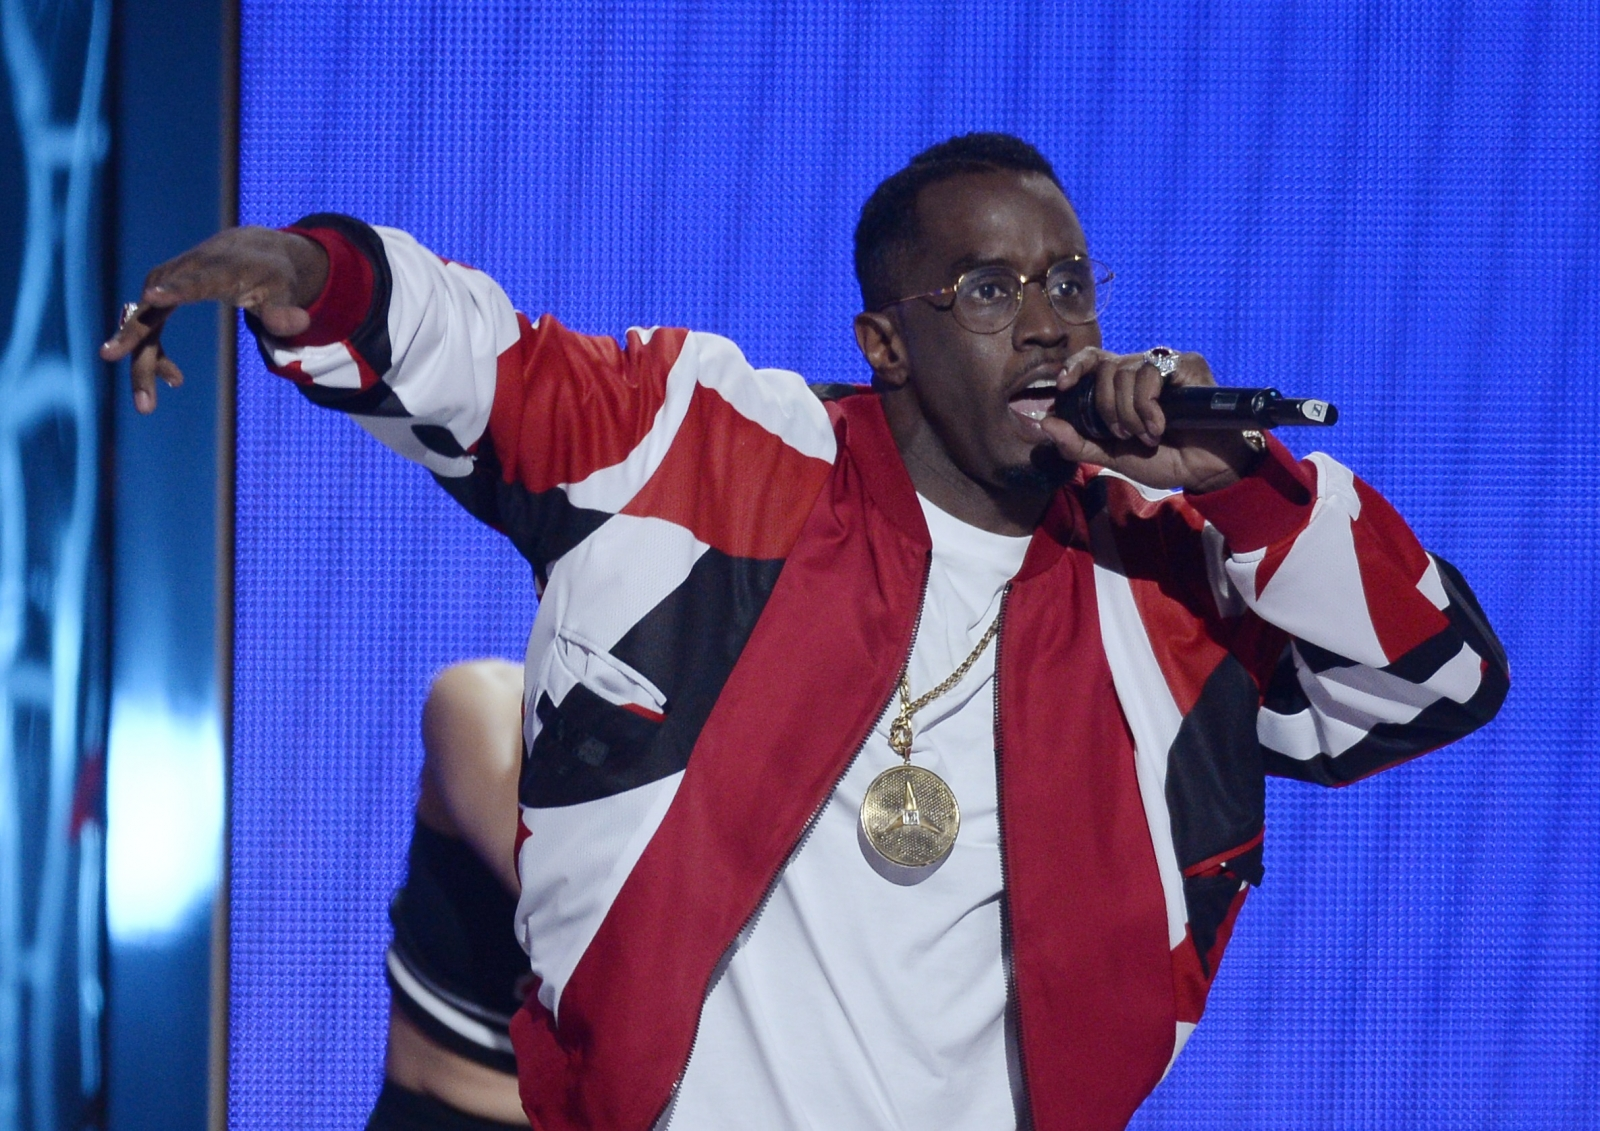 P Diddy at the BET Awards